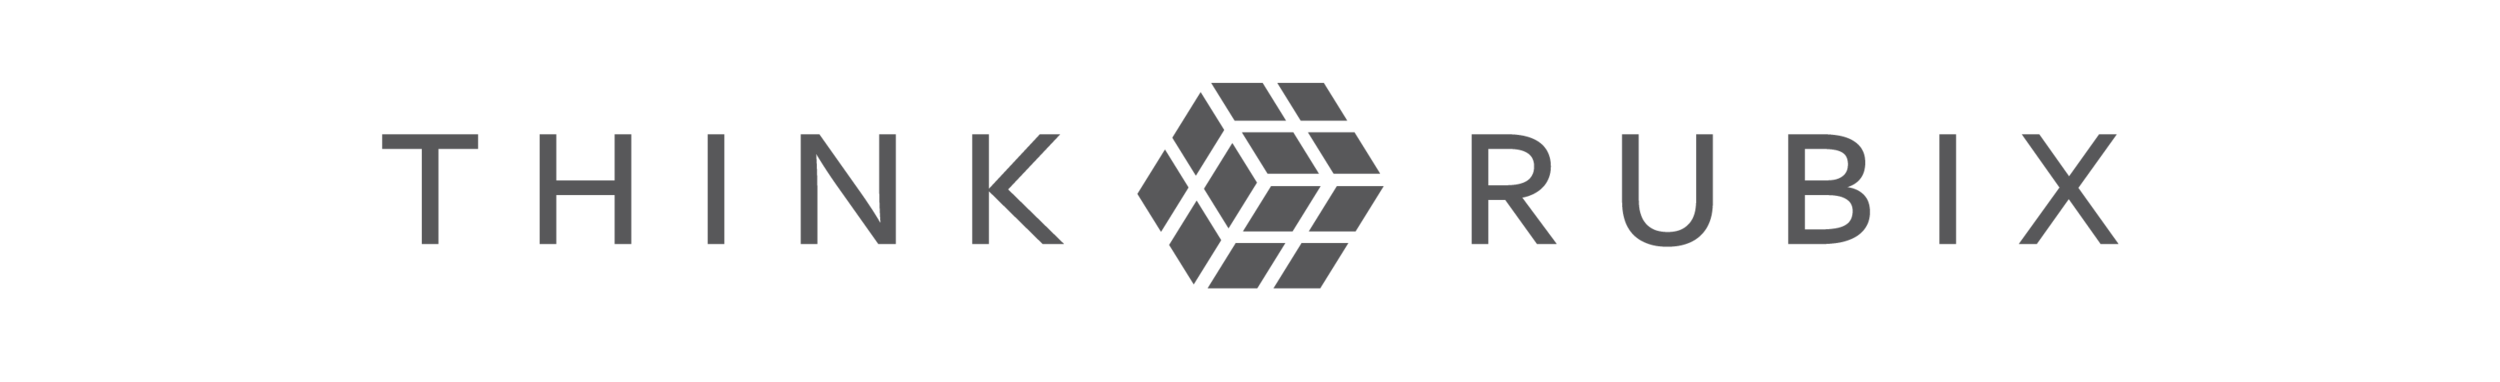 ThinkRubix_Logo_Digital_Gray-WithoutTagline.png